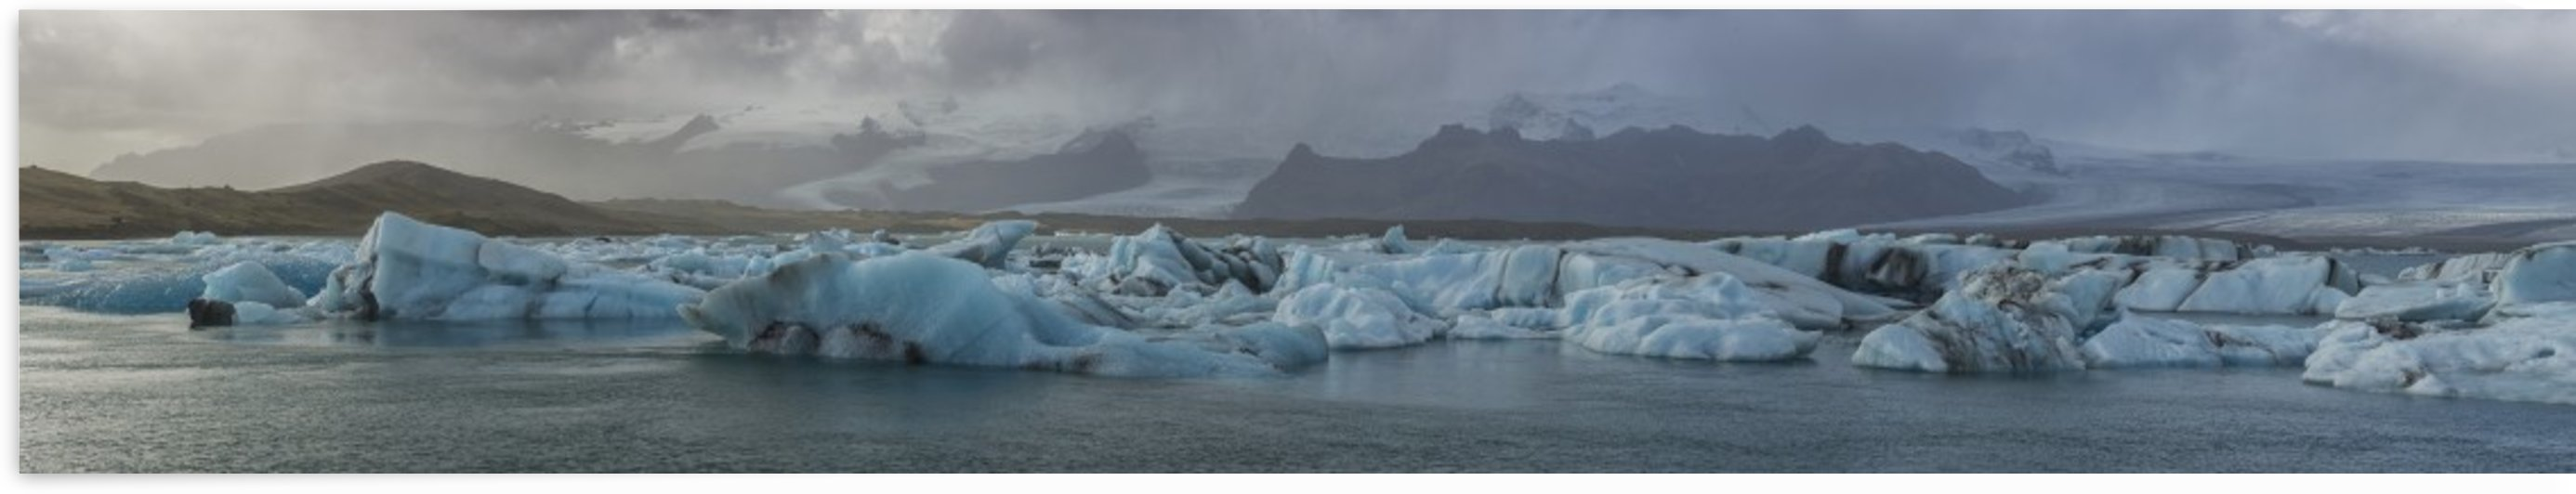 Stitched panoramic image of the Jokulsarlon glacial lagoon along the Southern coast of Iceland; Iceland by PacificStock